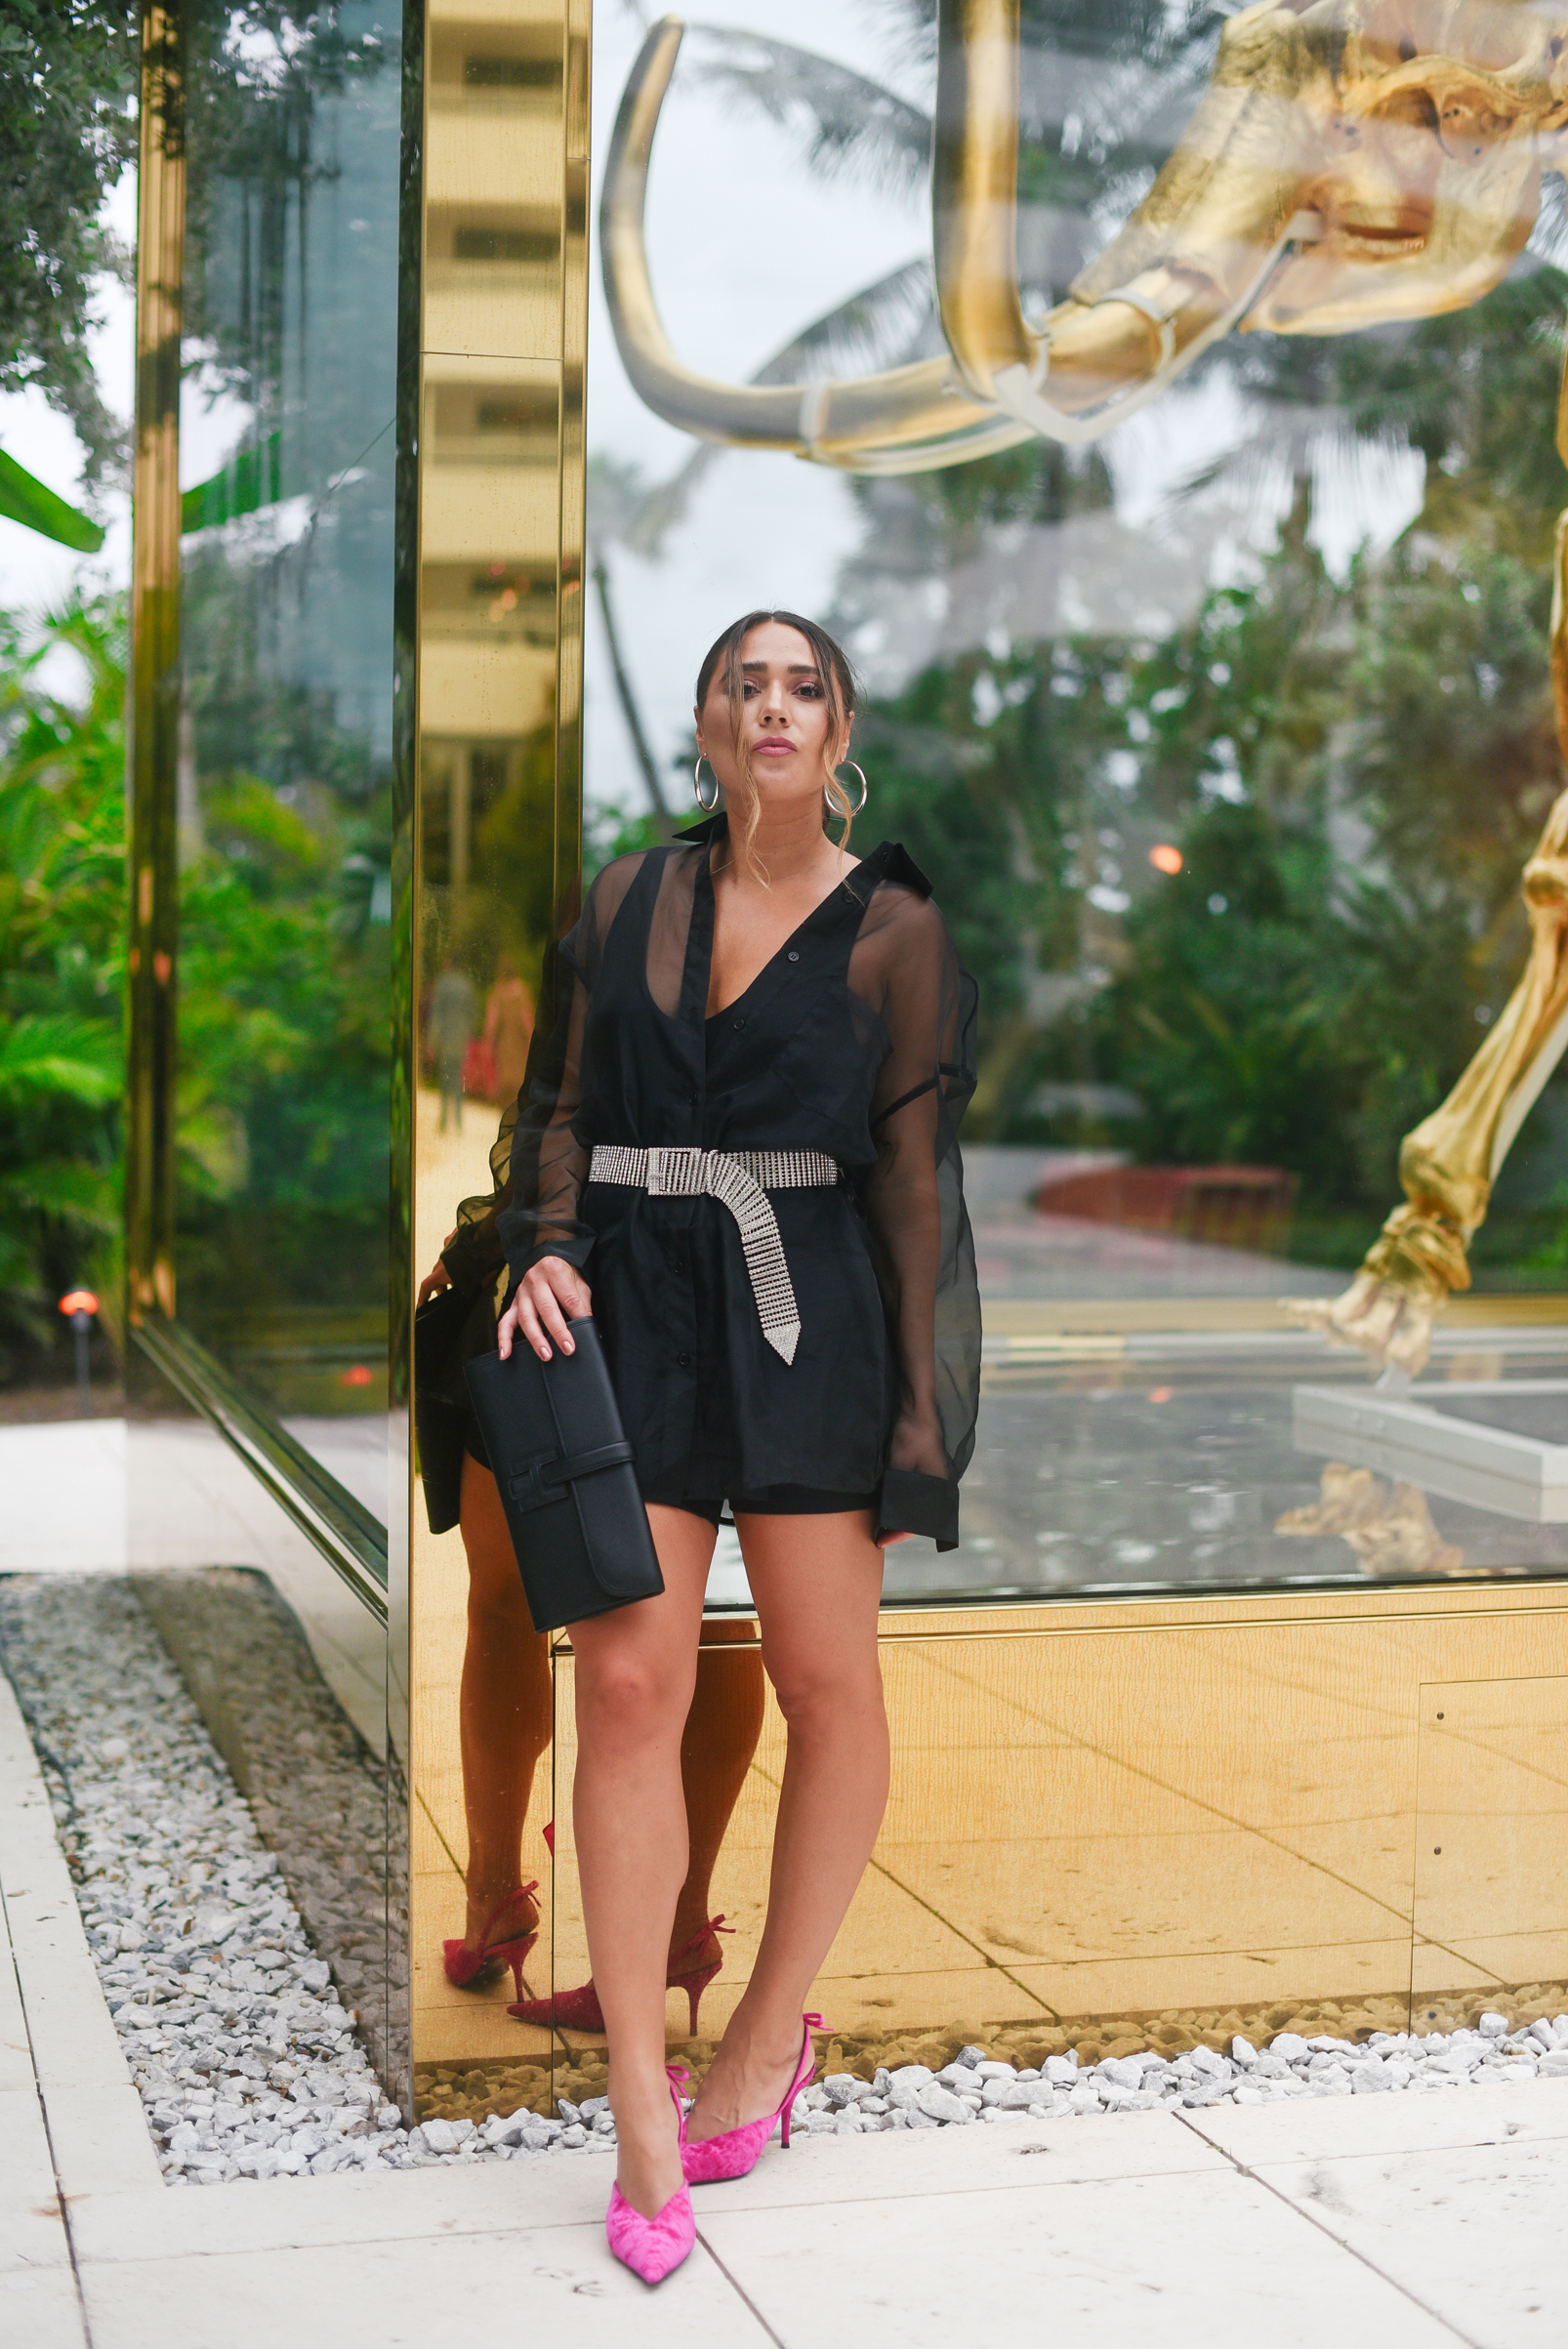 miami-swim-week-street-style-outfit-faena-hotel-whoolly-mammoth